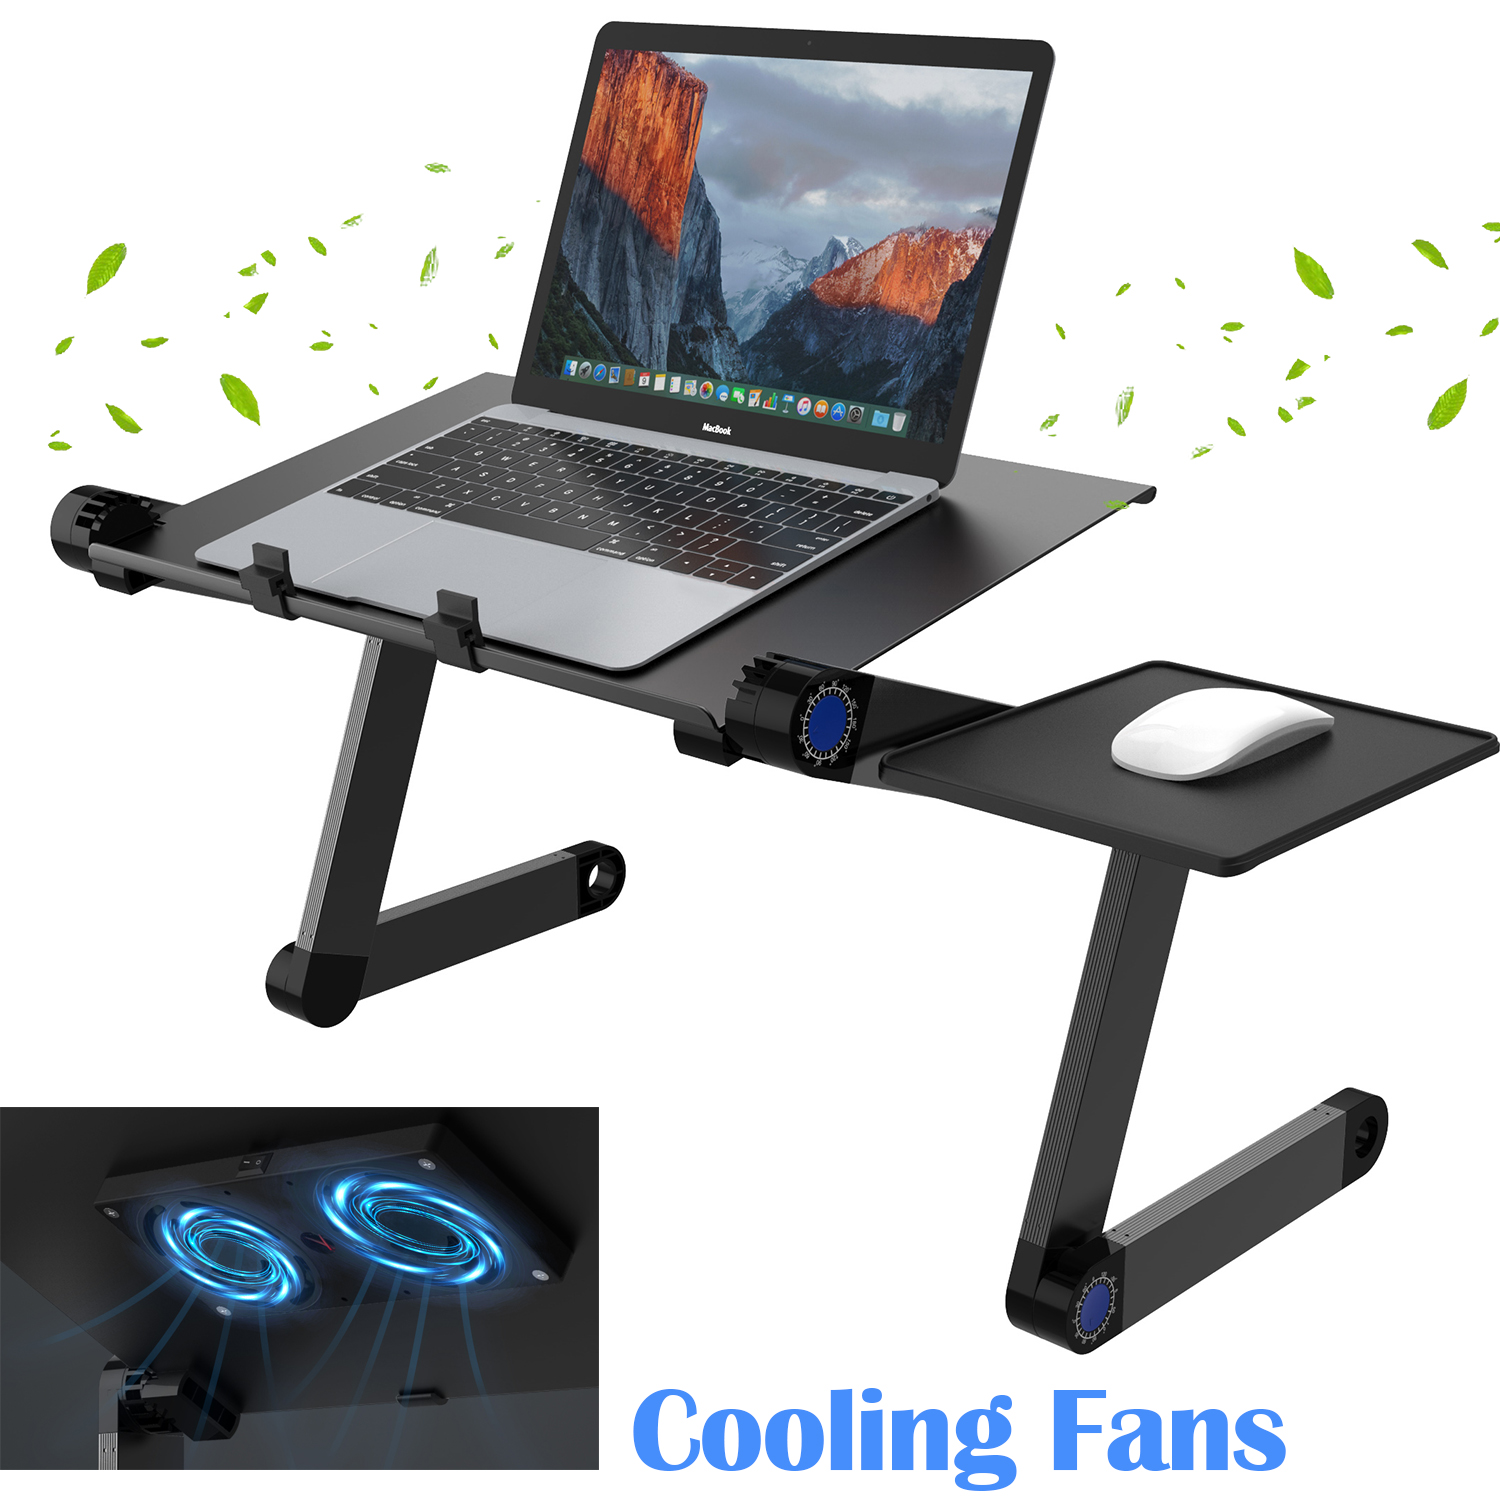 SLYPNOS Adjustable Laptop Stand Folding Portable Standing Desk Cooling Ventilated Aluminum Laptop Riser Tablet Holder Notebook Tray with Cooling Fans, Detachable Mouse Tray for Desk Bed Couch, Black